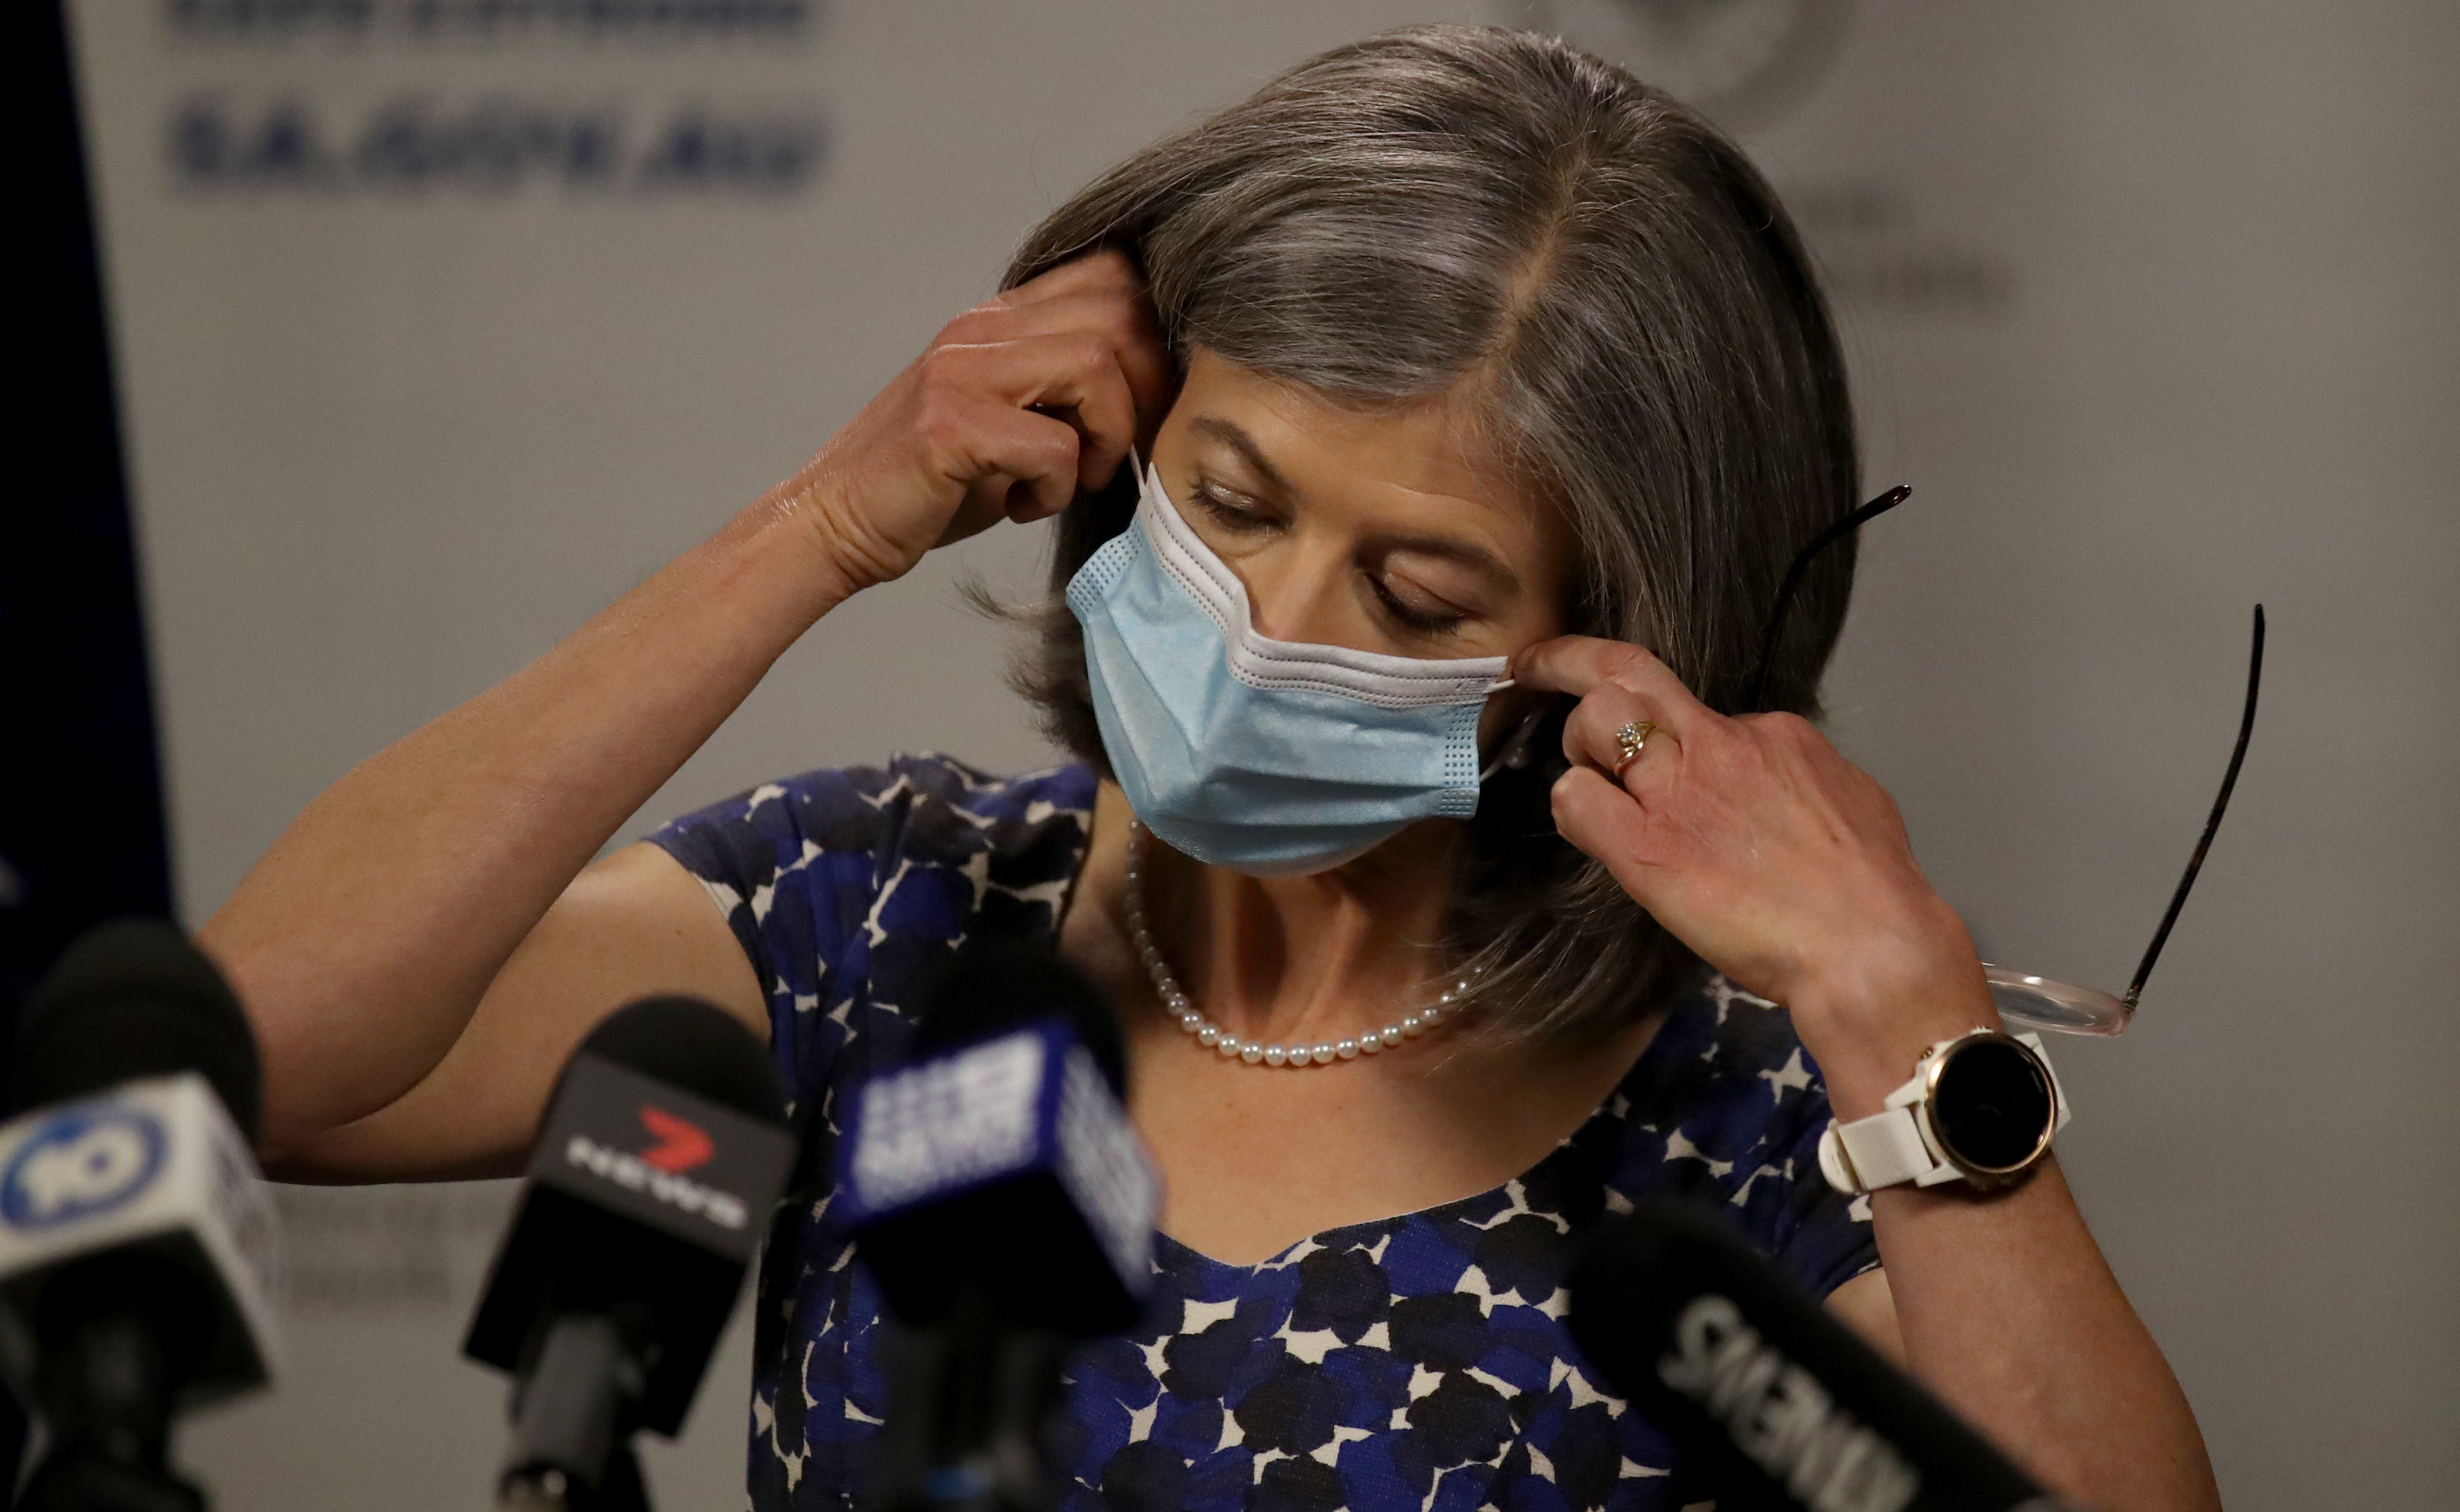 South Australian Chief Public Health Officer Nicola Spurrier removes her mask during the COVID-19 daily update on November 18, 2020 in Adelaide, Australia.